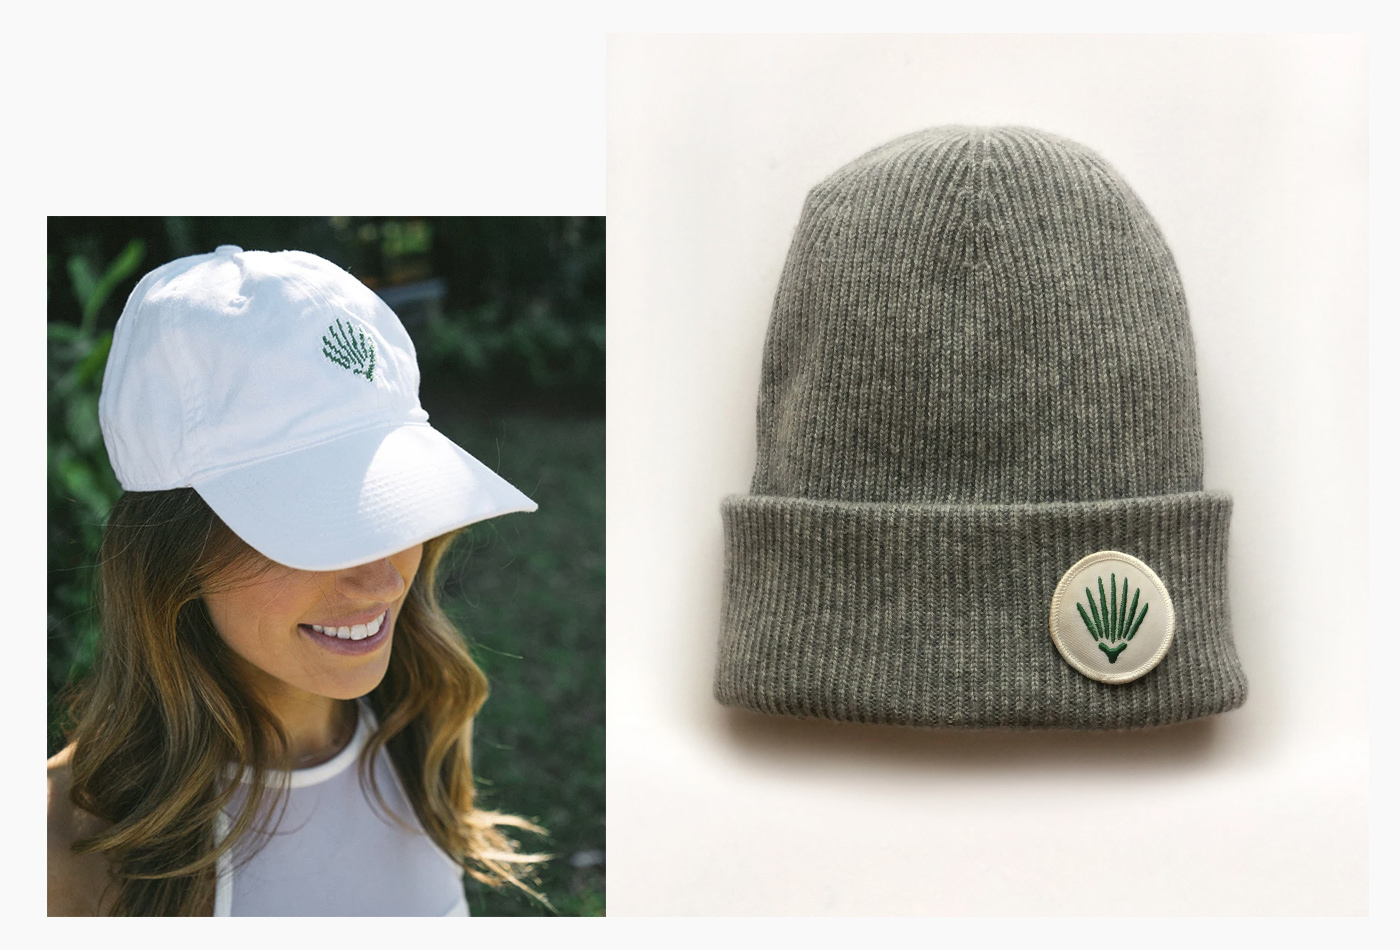 hedge-dress-polo-vacaliebres-hedgehog-logo-hat-cap-smarthers-branson-espedrillas-slippers-beanie